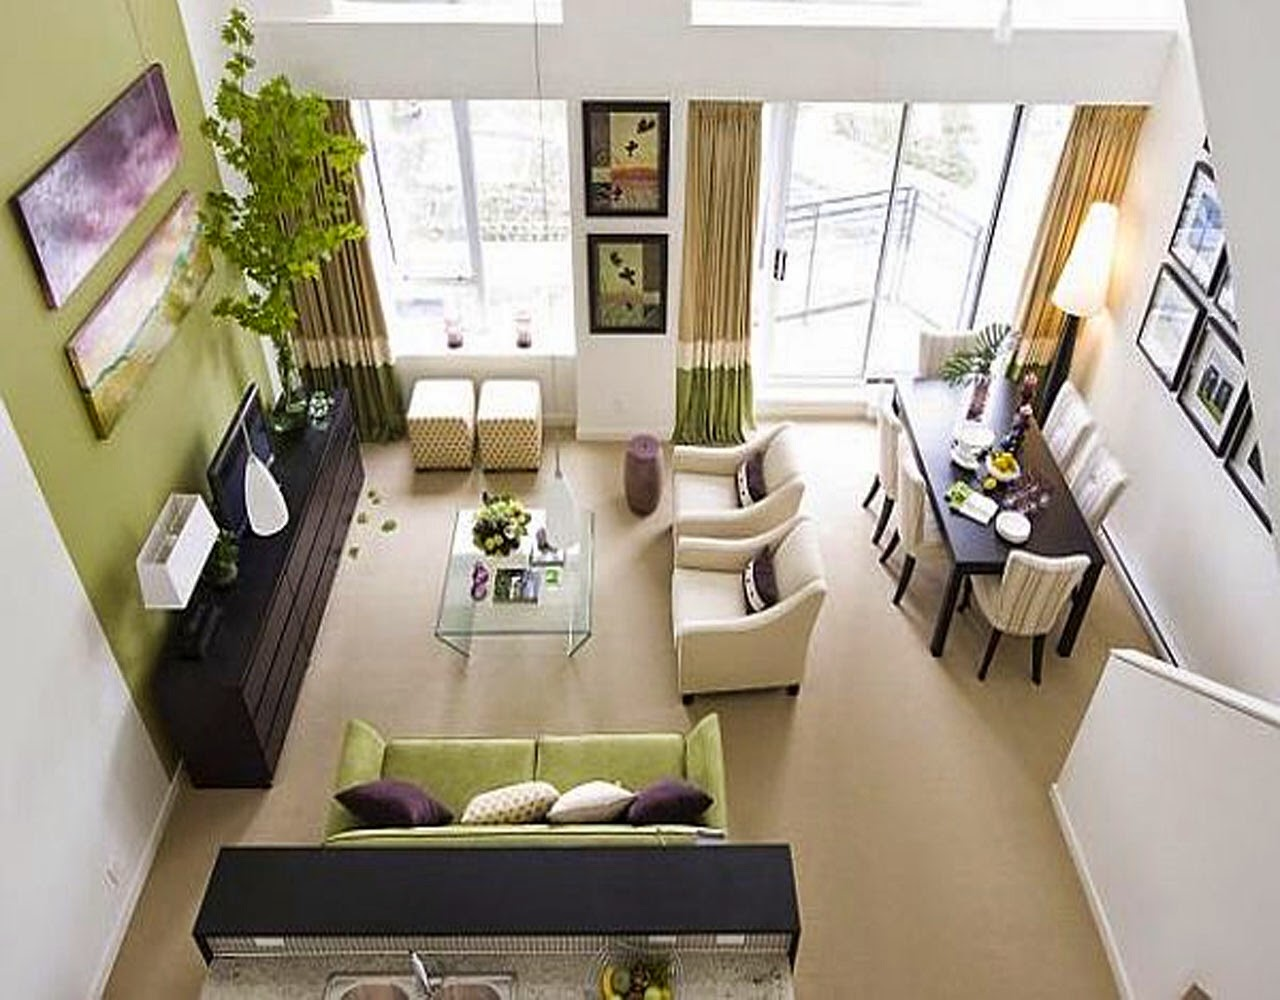 Dining Room Design Ideas Small Spaces Part - 16: Living Dining Room Decorating Ideas Small Spaces